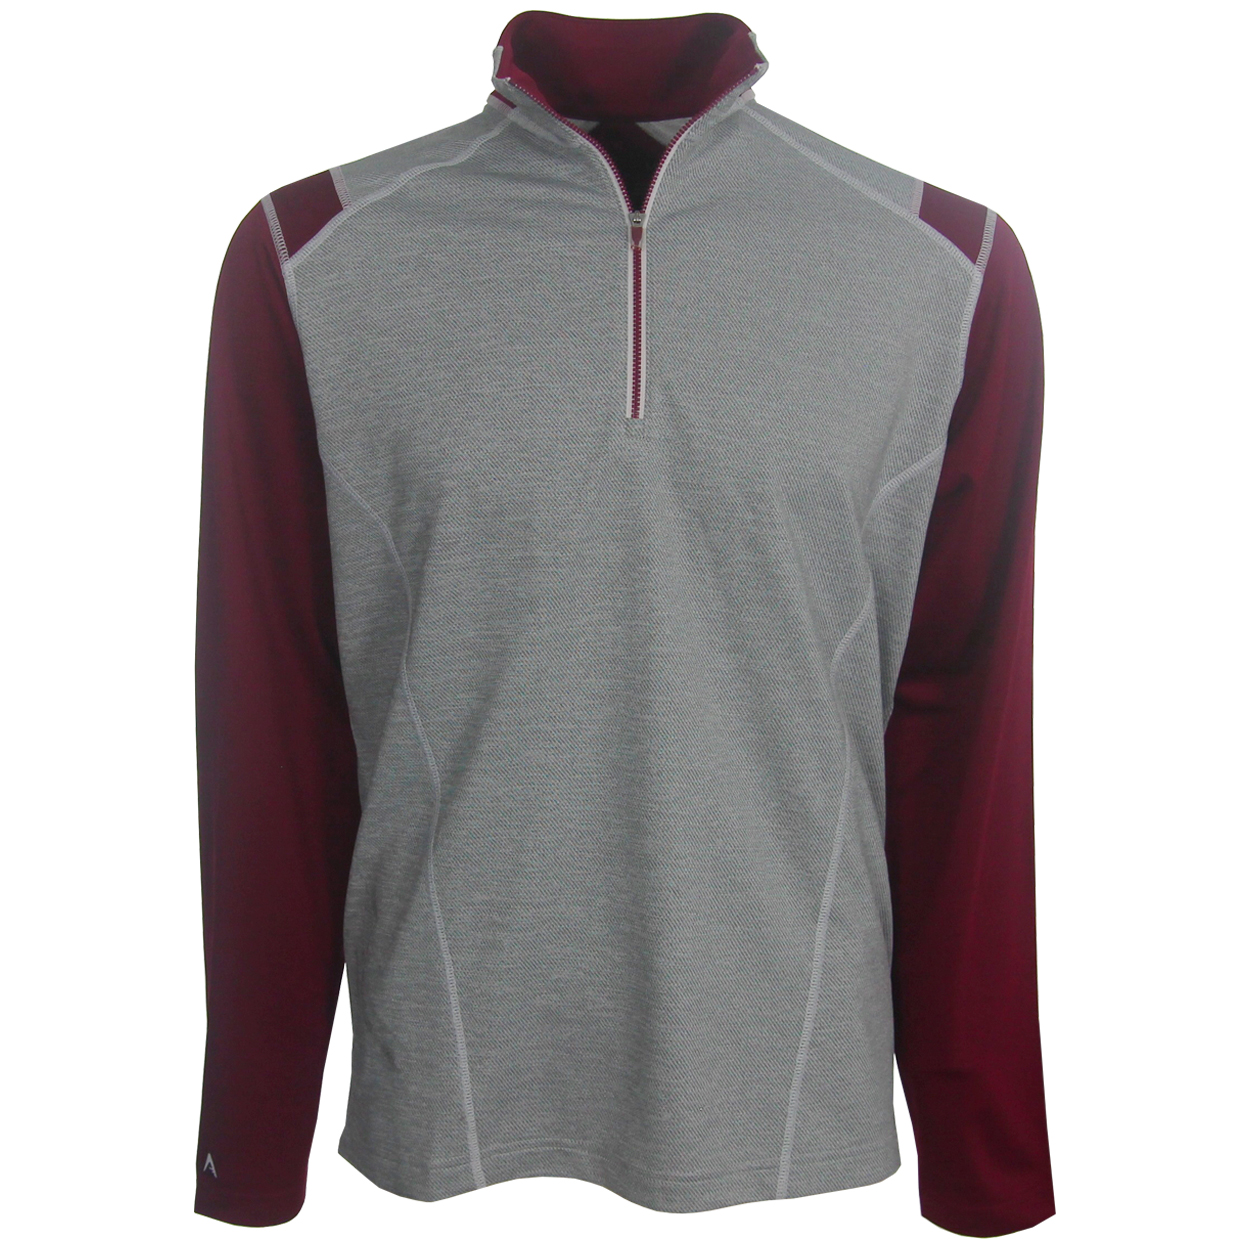 Antigua Automatic 1/4-Zip Golf Pullover